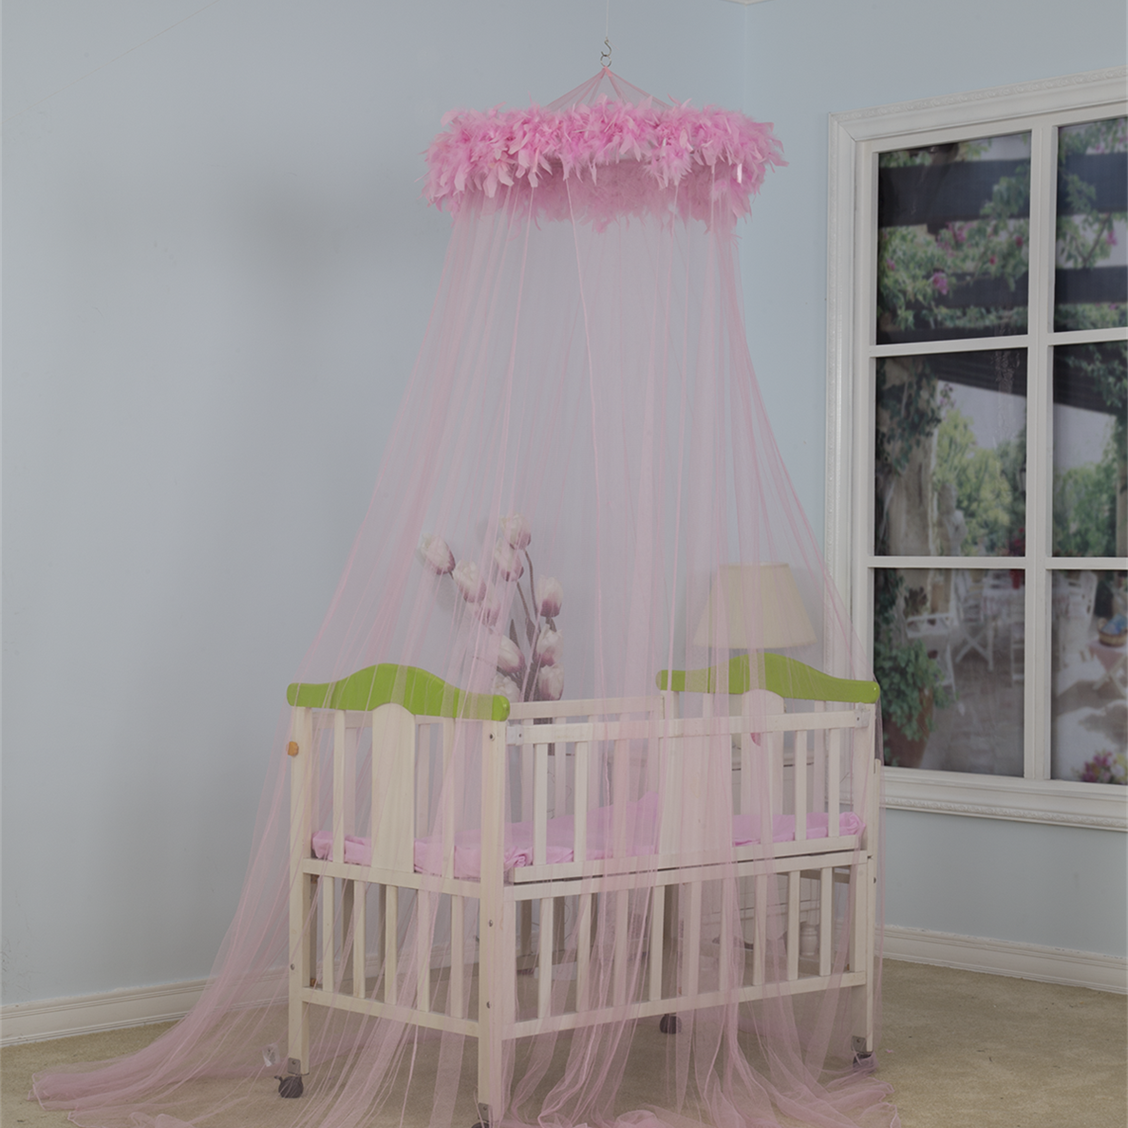 New Design Round Mosquito Net Baby anti-insects Canopy with Feather